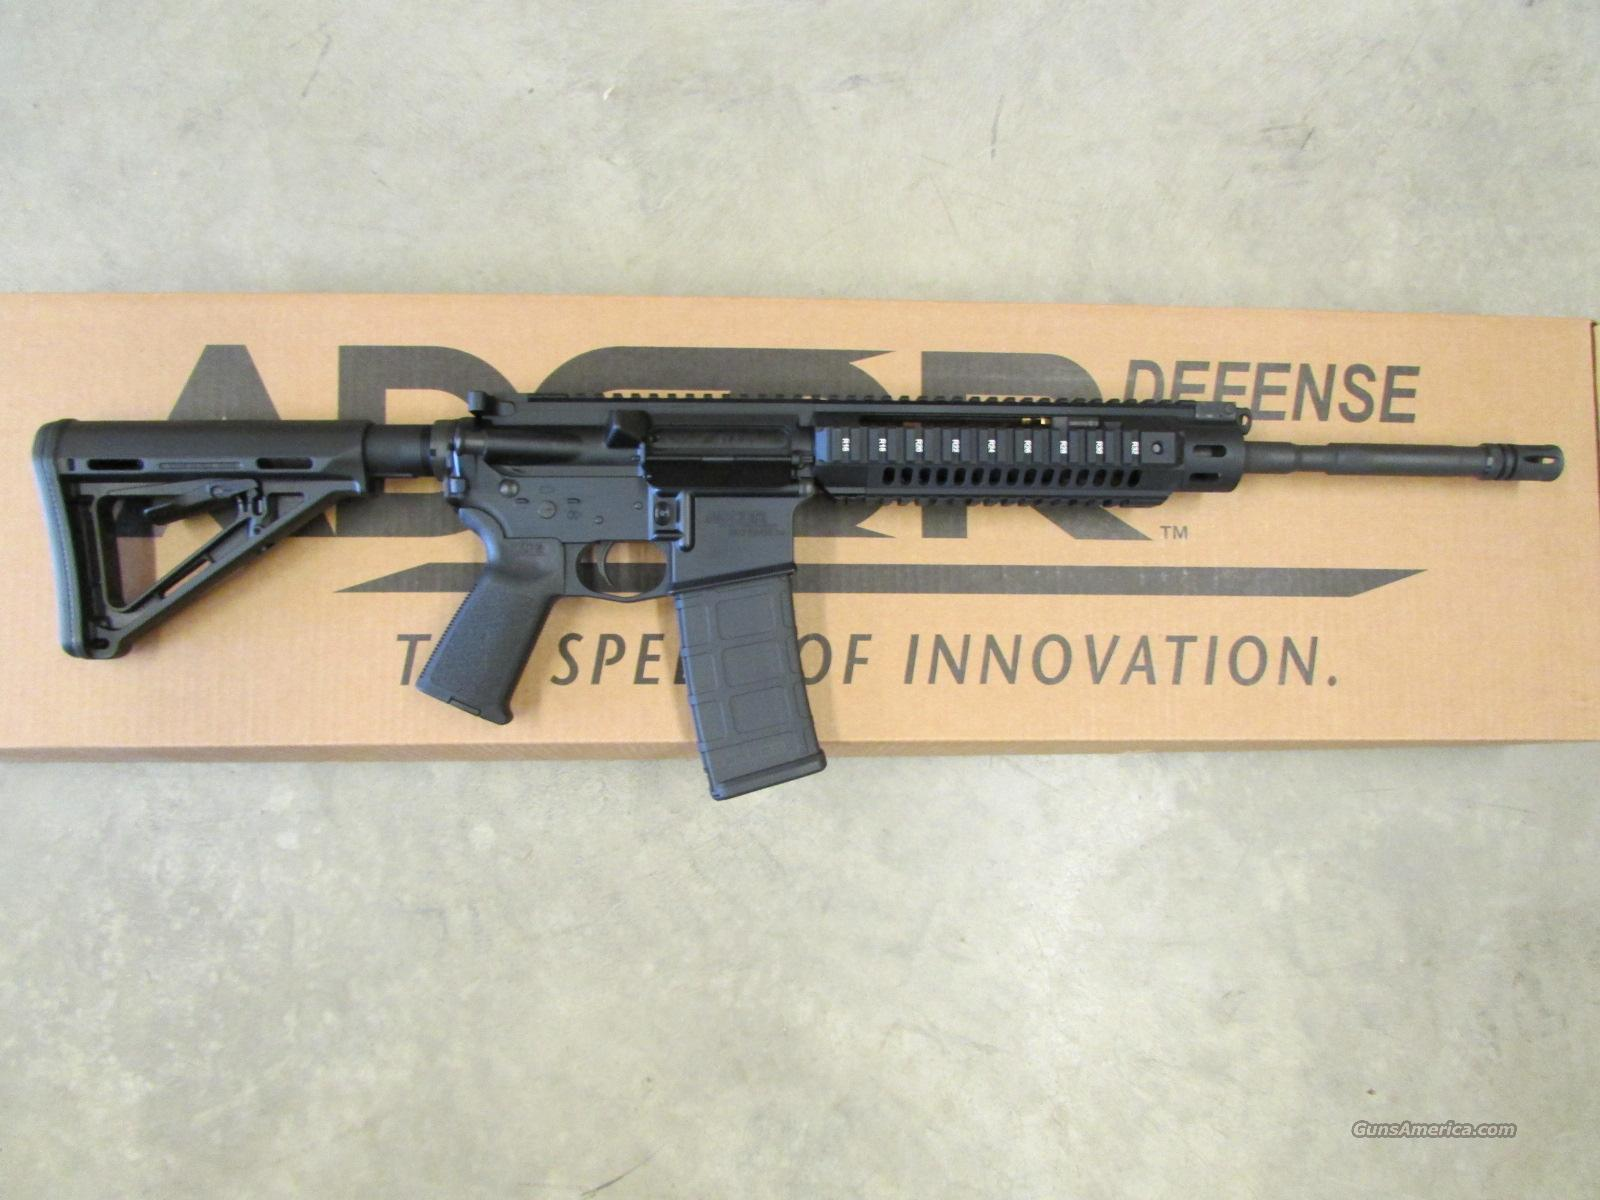 Adcor B.E.A.R. Piston Driven AR-15/ M4 5.56 NATO MagPul Furniture  Guns > Rifles > AR-15 Rifles - Small Manufacturers > Complete Rifle